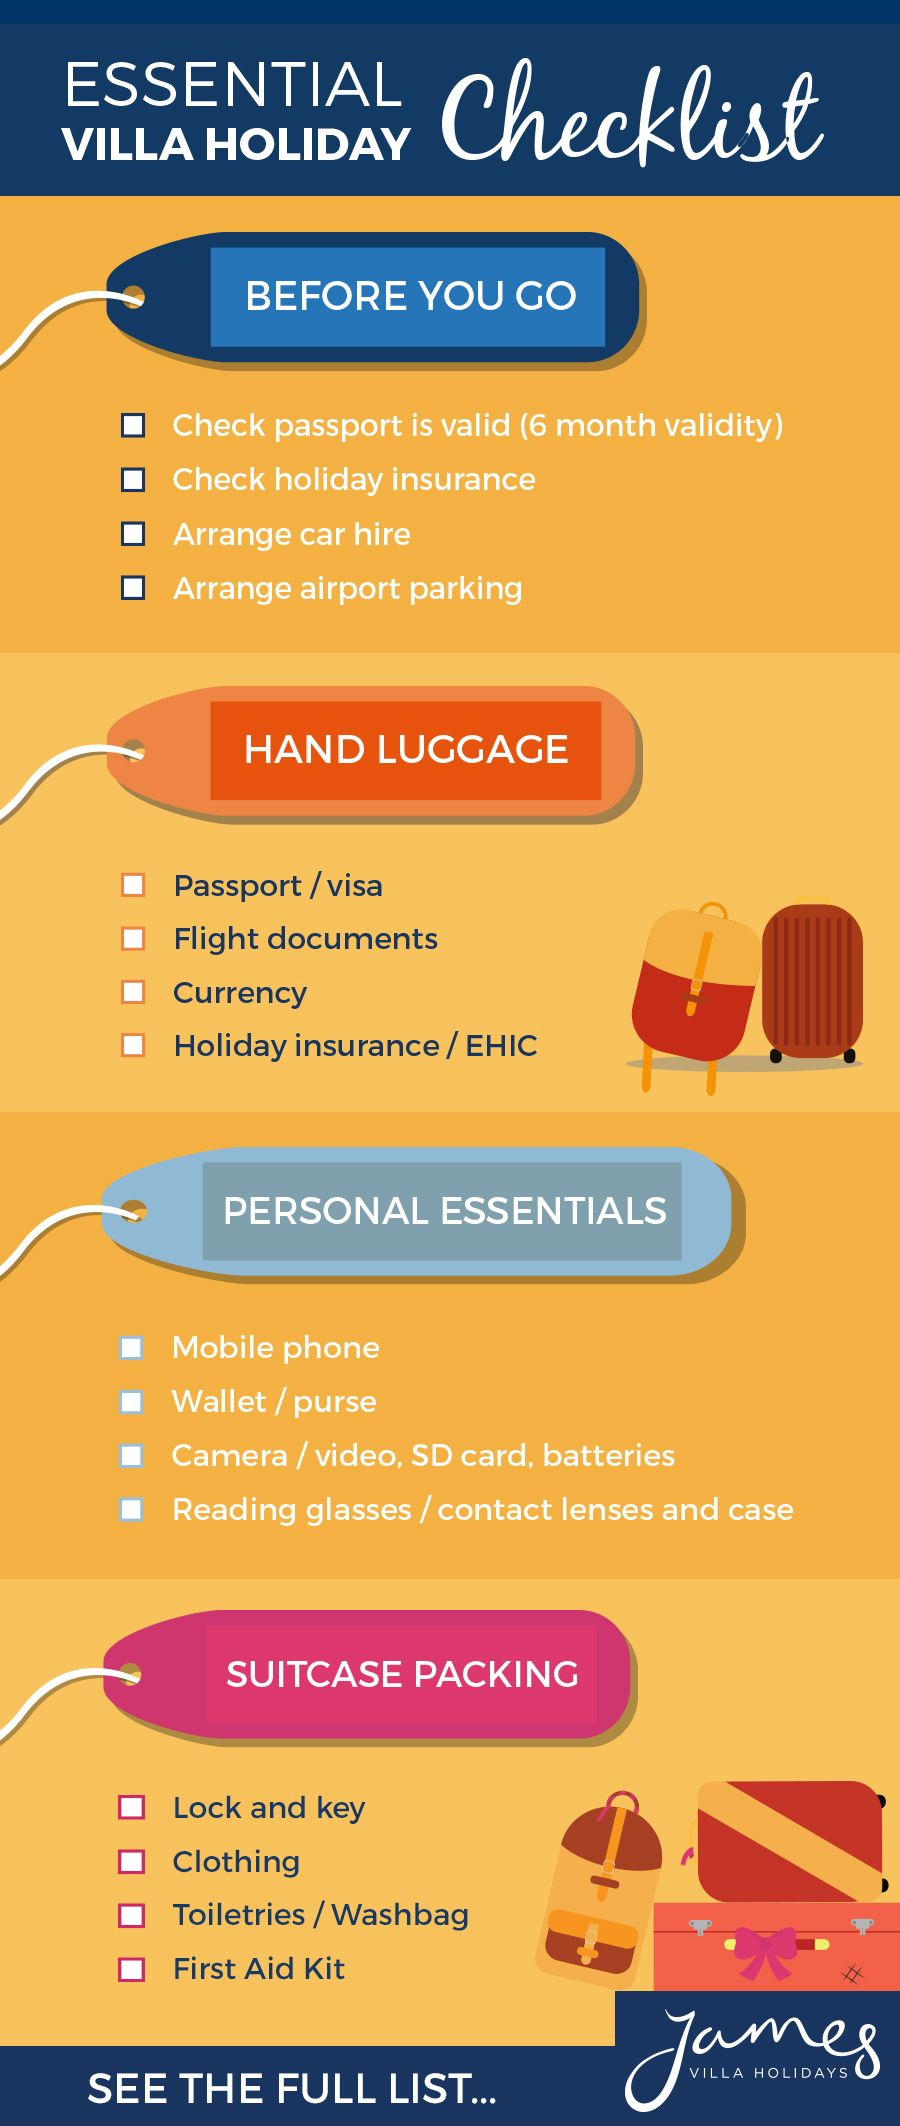 Download this essential villa holiday checklist and tick as you pack everything for your next villa holiday. You won't forget a thing!